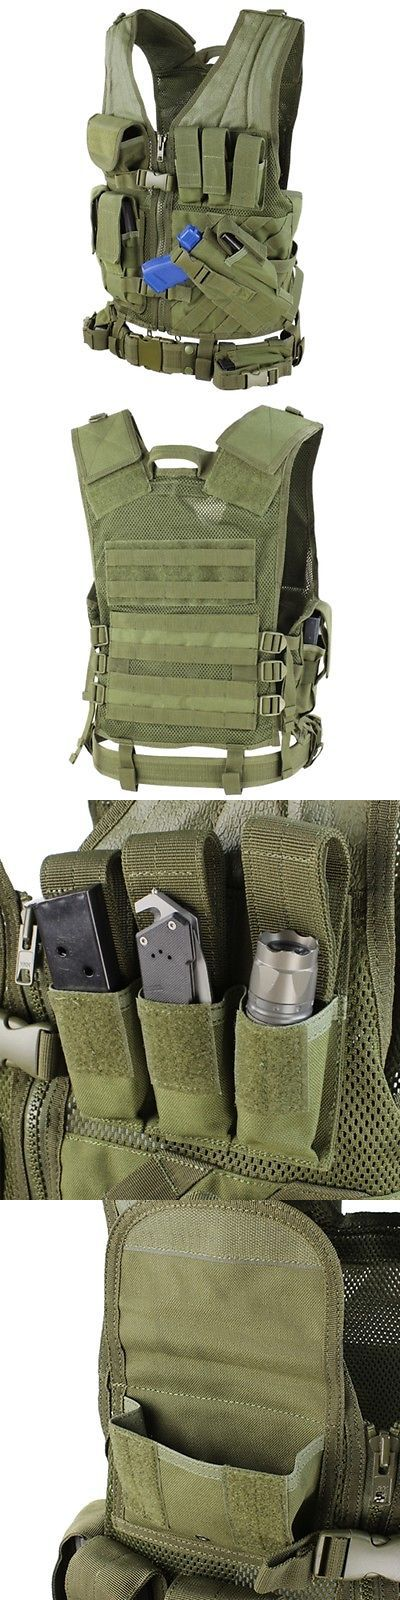 Other Hunting Clothing and Accs 159036: Condor Cv Crossdraw Assault Tactical Vest Chest Rig W Molle Od Green Size M L -> BUY IT NOW ONLY: $62.95 on eBay!